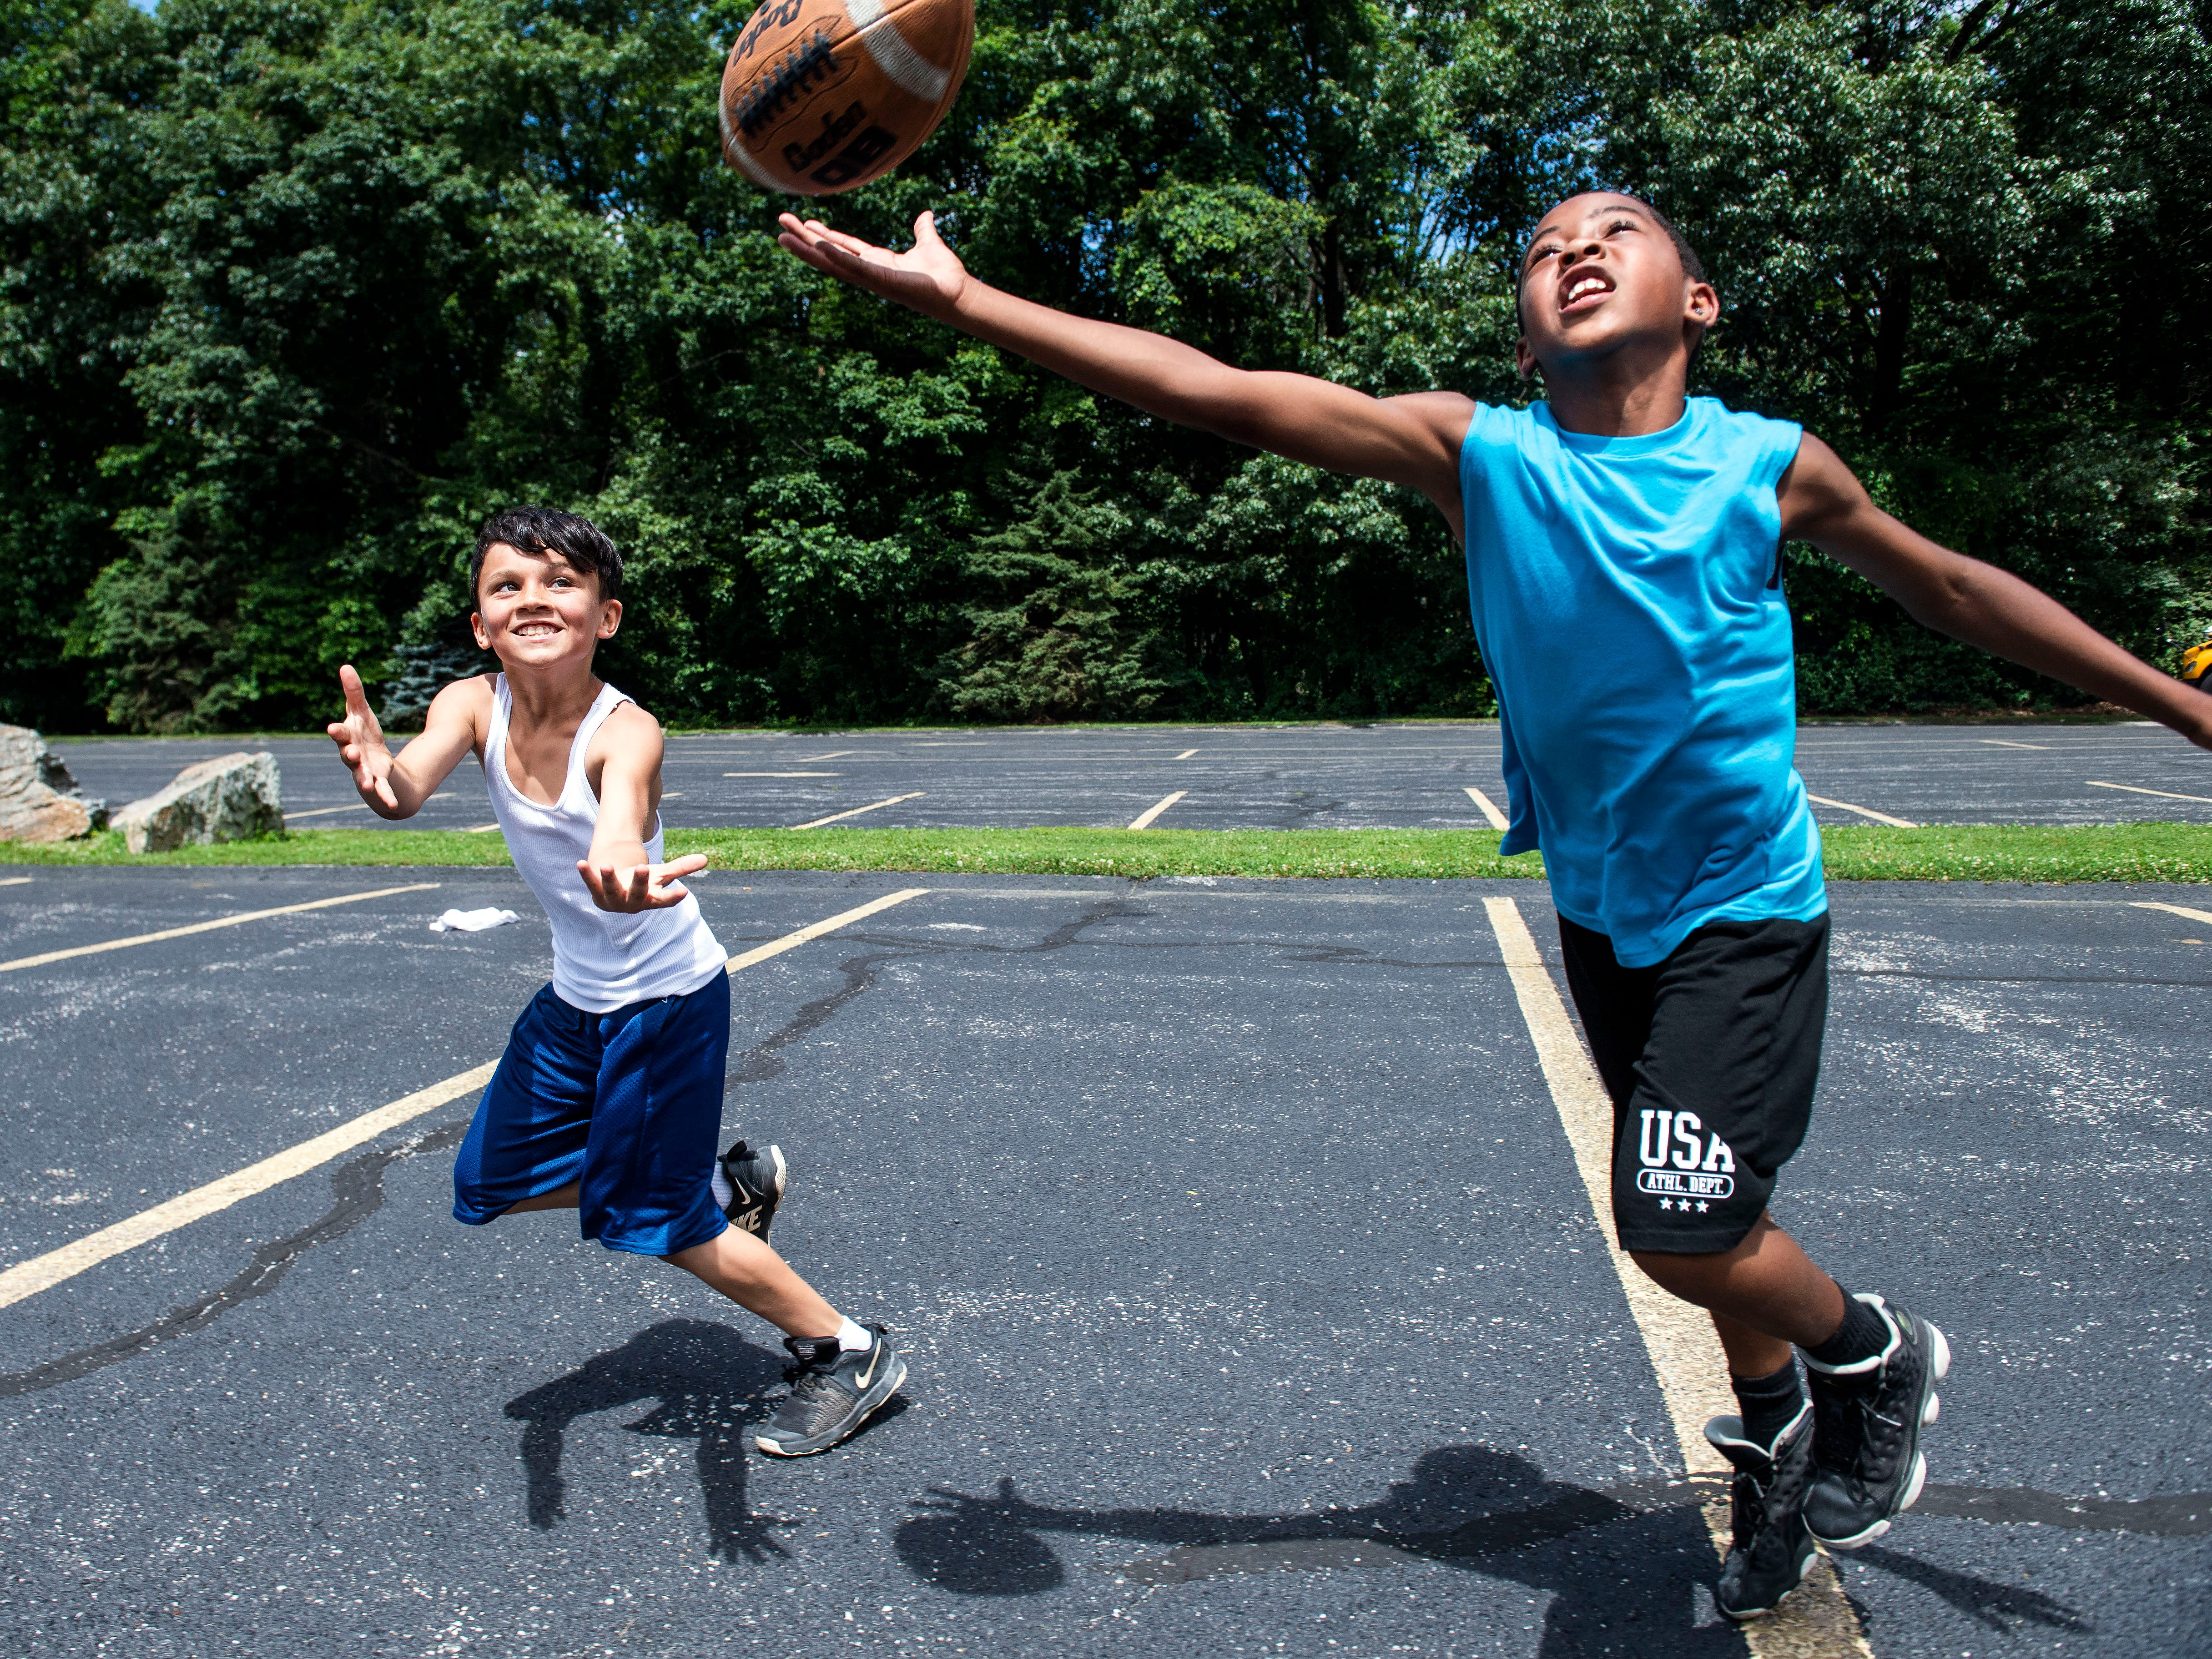 Conrad Beatty, 9, right, tips the ball while playing defense against Kyle Jackson, 10, on Thursday, June 28, 2018. Jordan Bowie, a 2017 Central York grad, spent the afternoon playing football with kids during his first year working with the St. Matthew Lutheran Church summer camp program at Rocky Ridge Park.